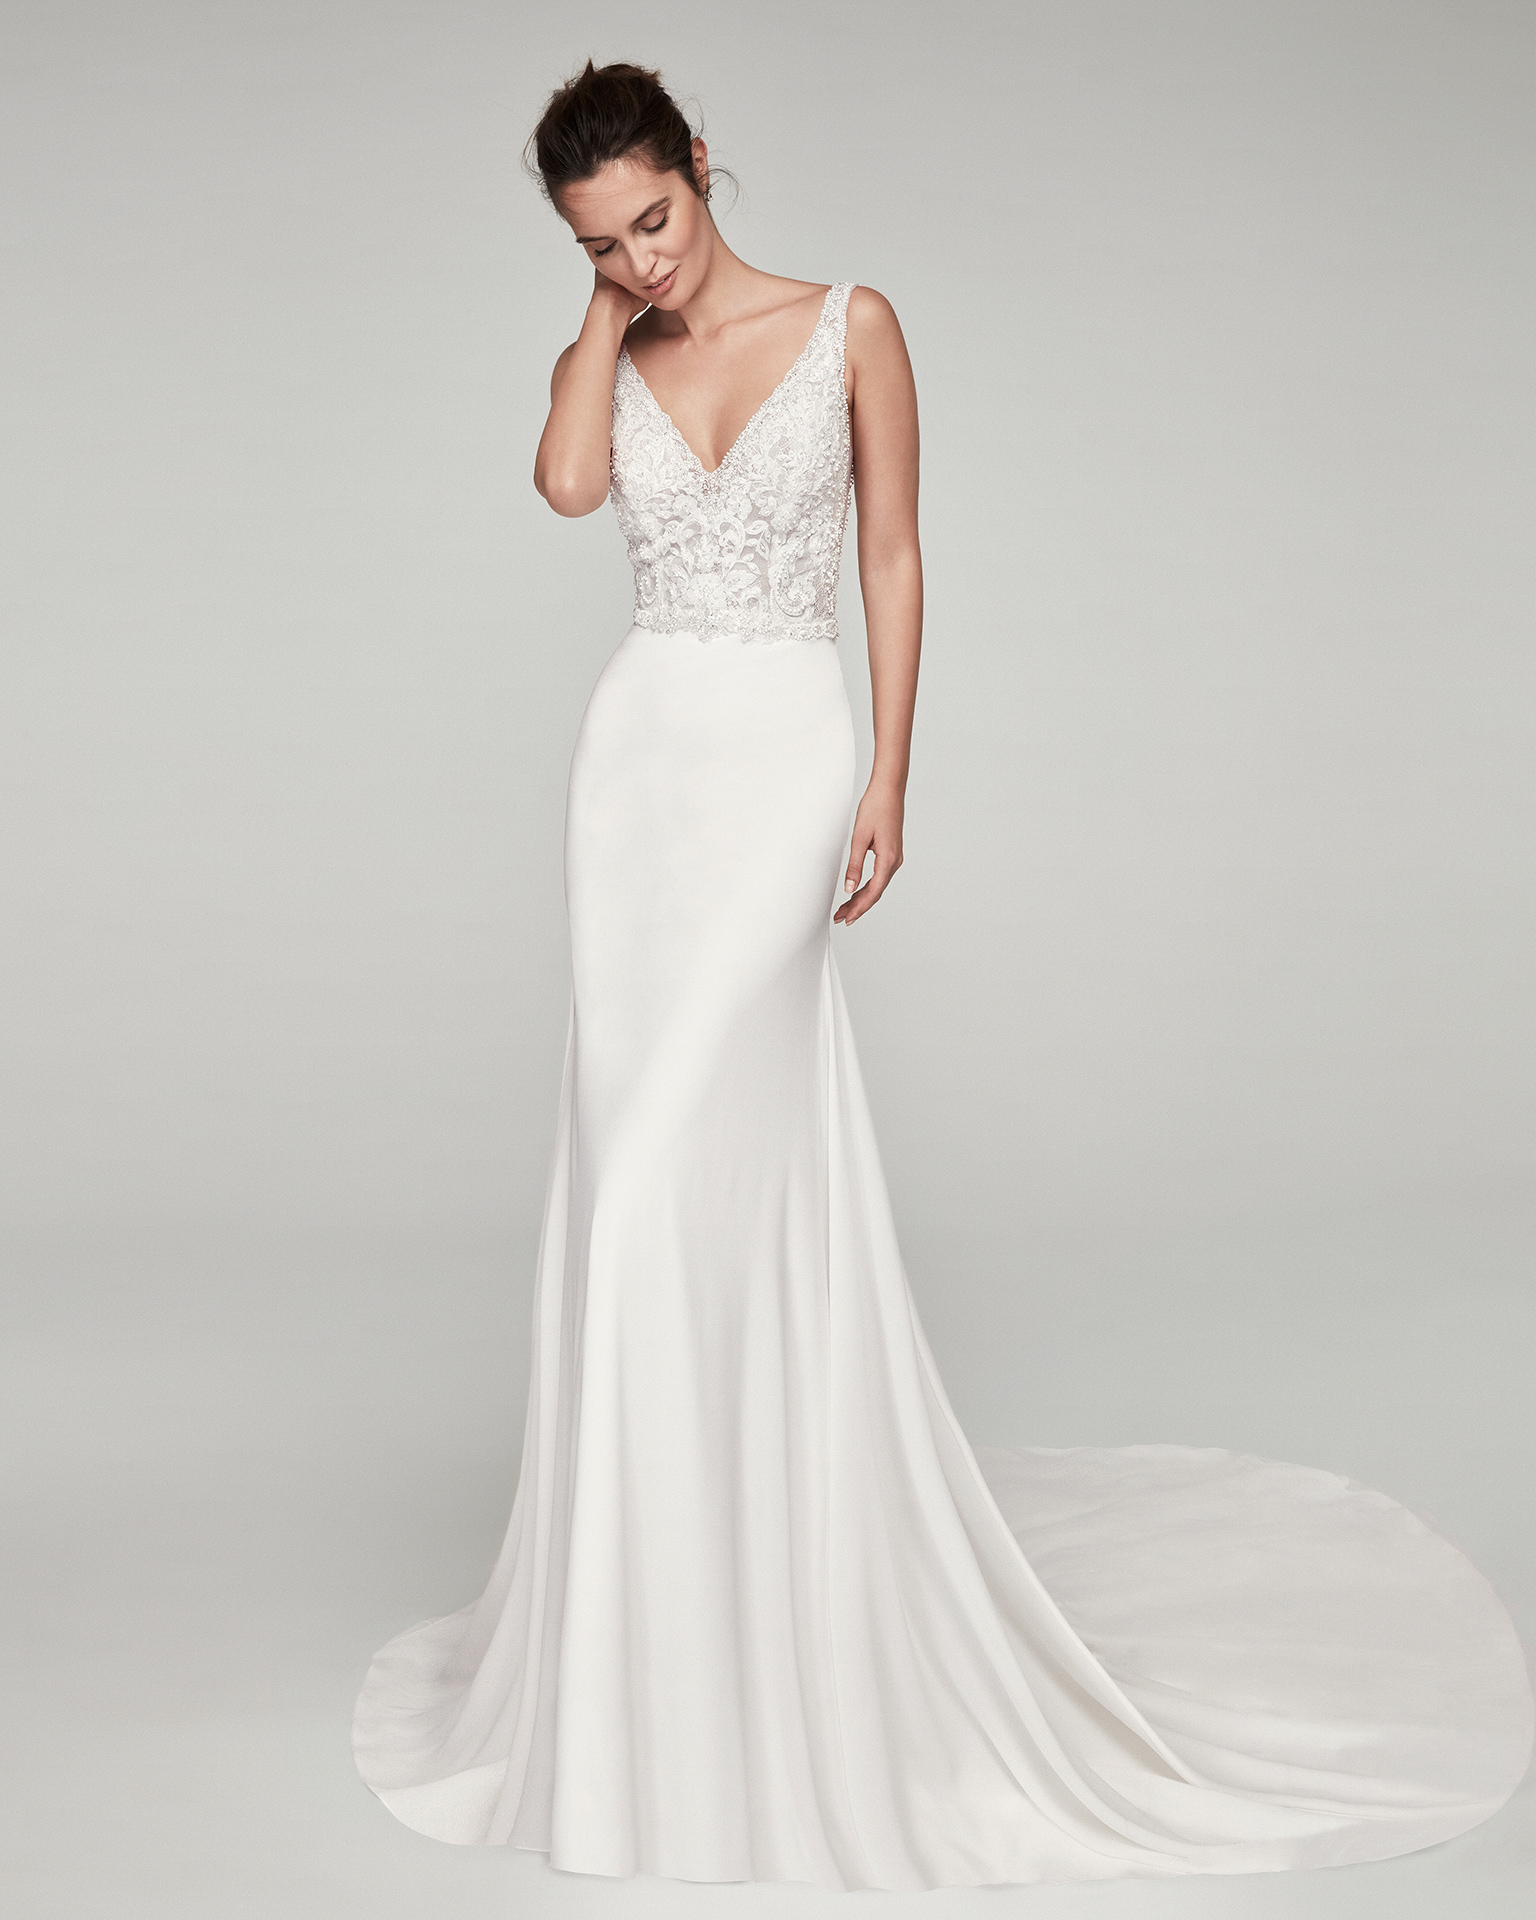 Sheath-style wedding dress in crepe Georgette and beaded lace. With V-neckline and back. Available in natural. 2019 ALMA_NOVIA Collection.